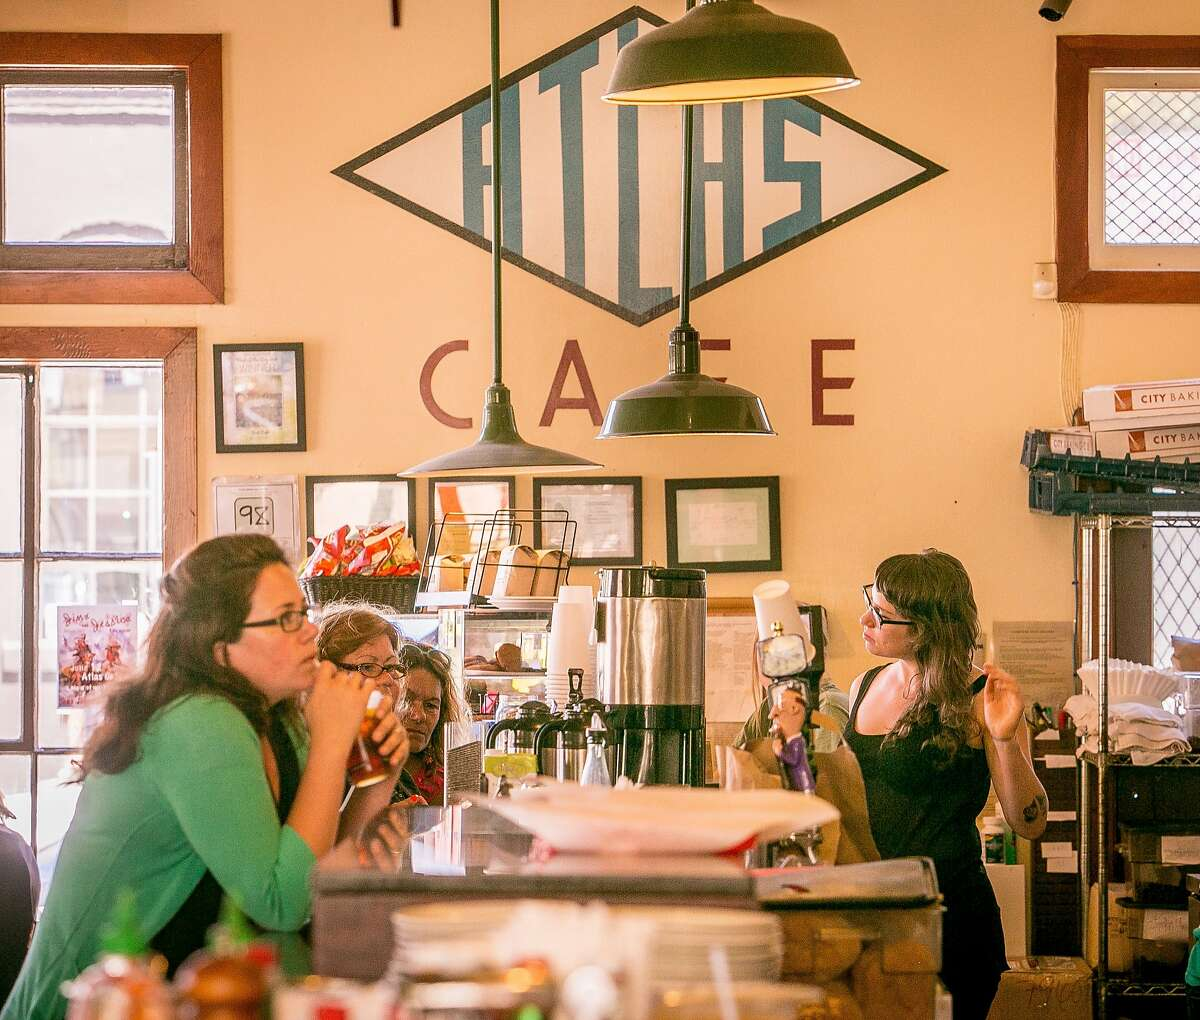 The interior of the Atlas Cafe in San Francsico, Calif. is seen on Monday, June 9th, 2014.